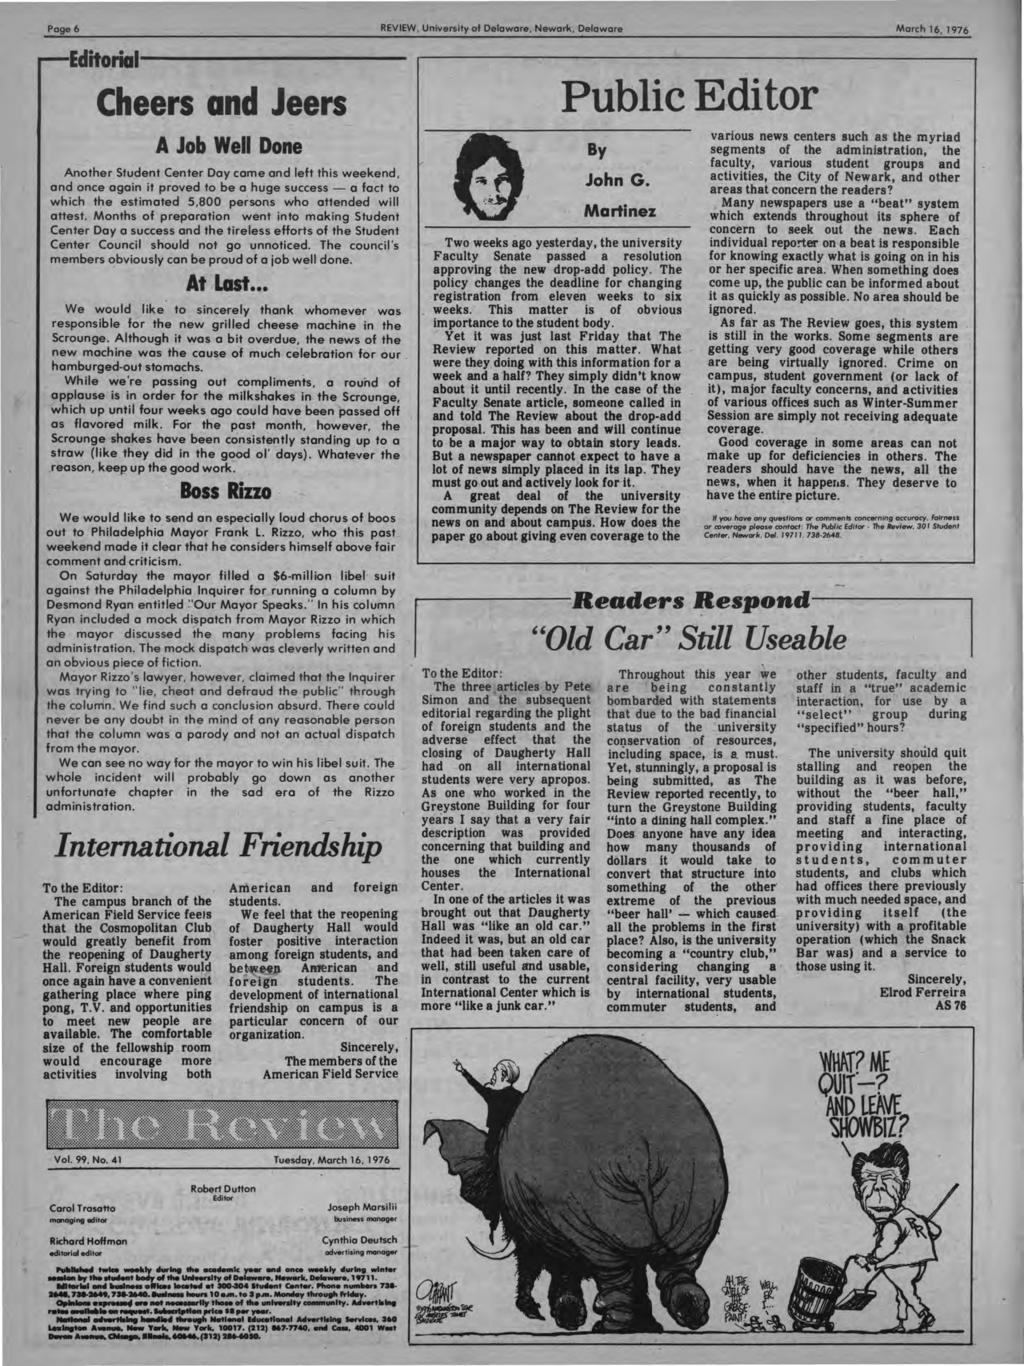 Page 6 REVEW, University of Delaware, Newark, Delaware March 16, 1976 Editorial--------- Cheers and Jeers A Job Well Done Another Student Center Day came and left this weekend, and once again it